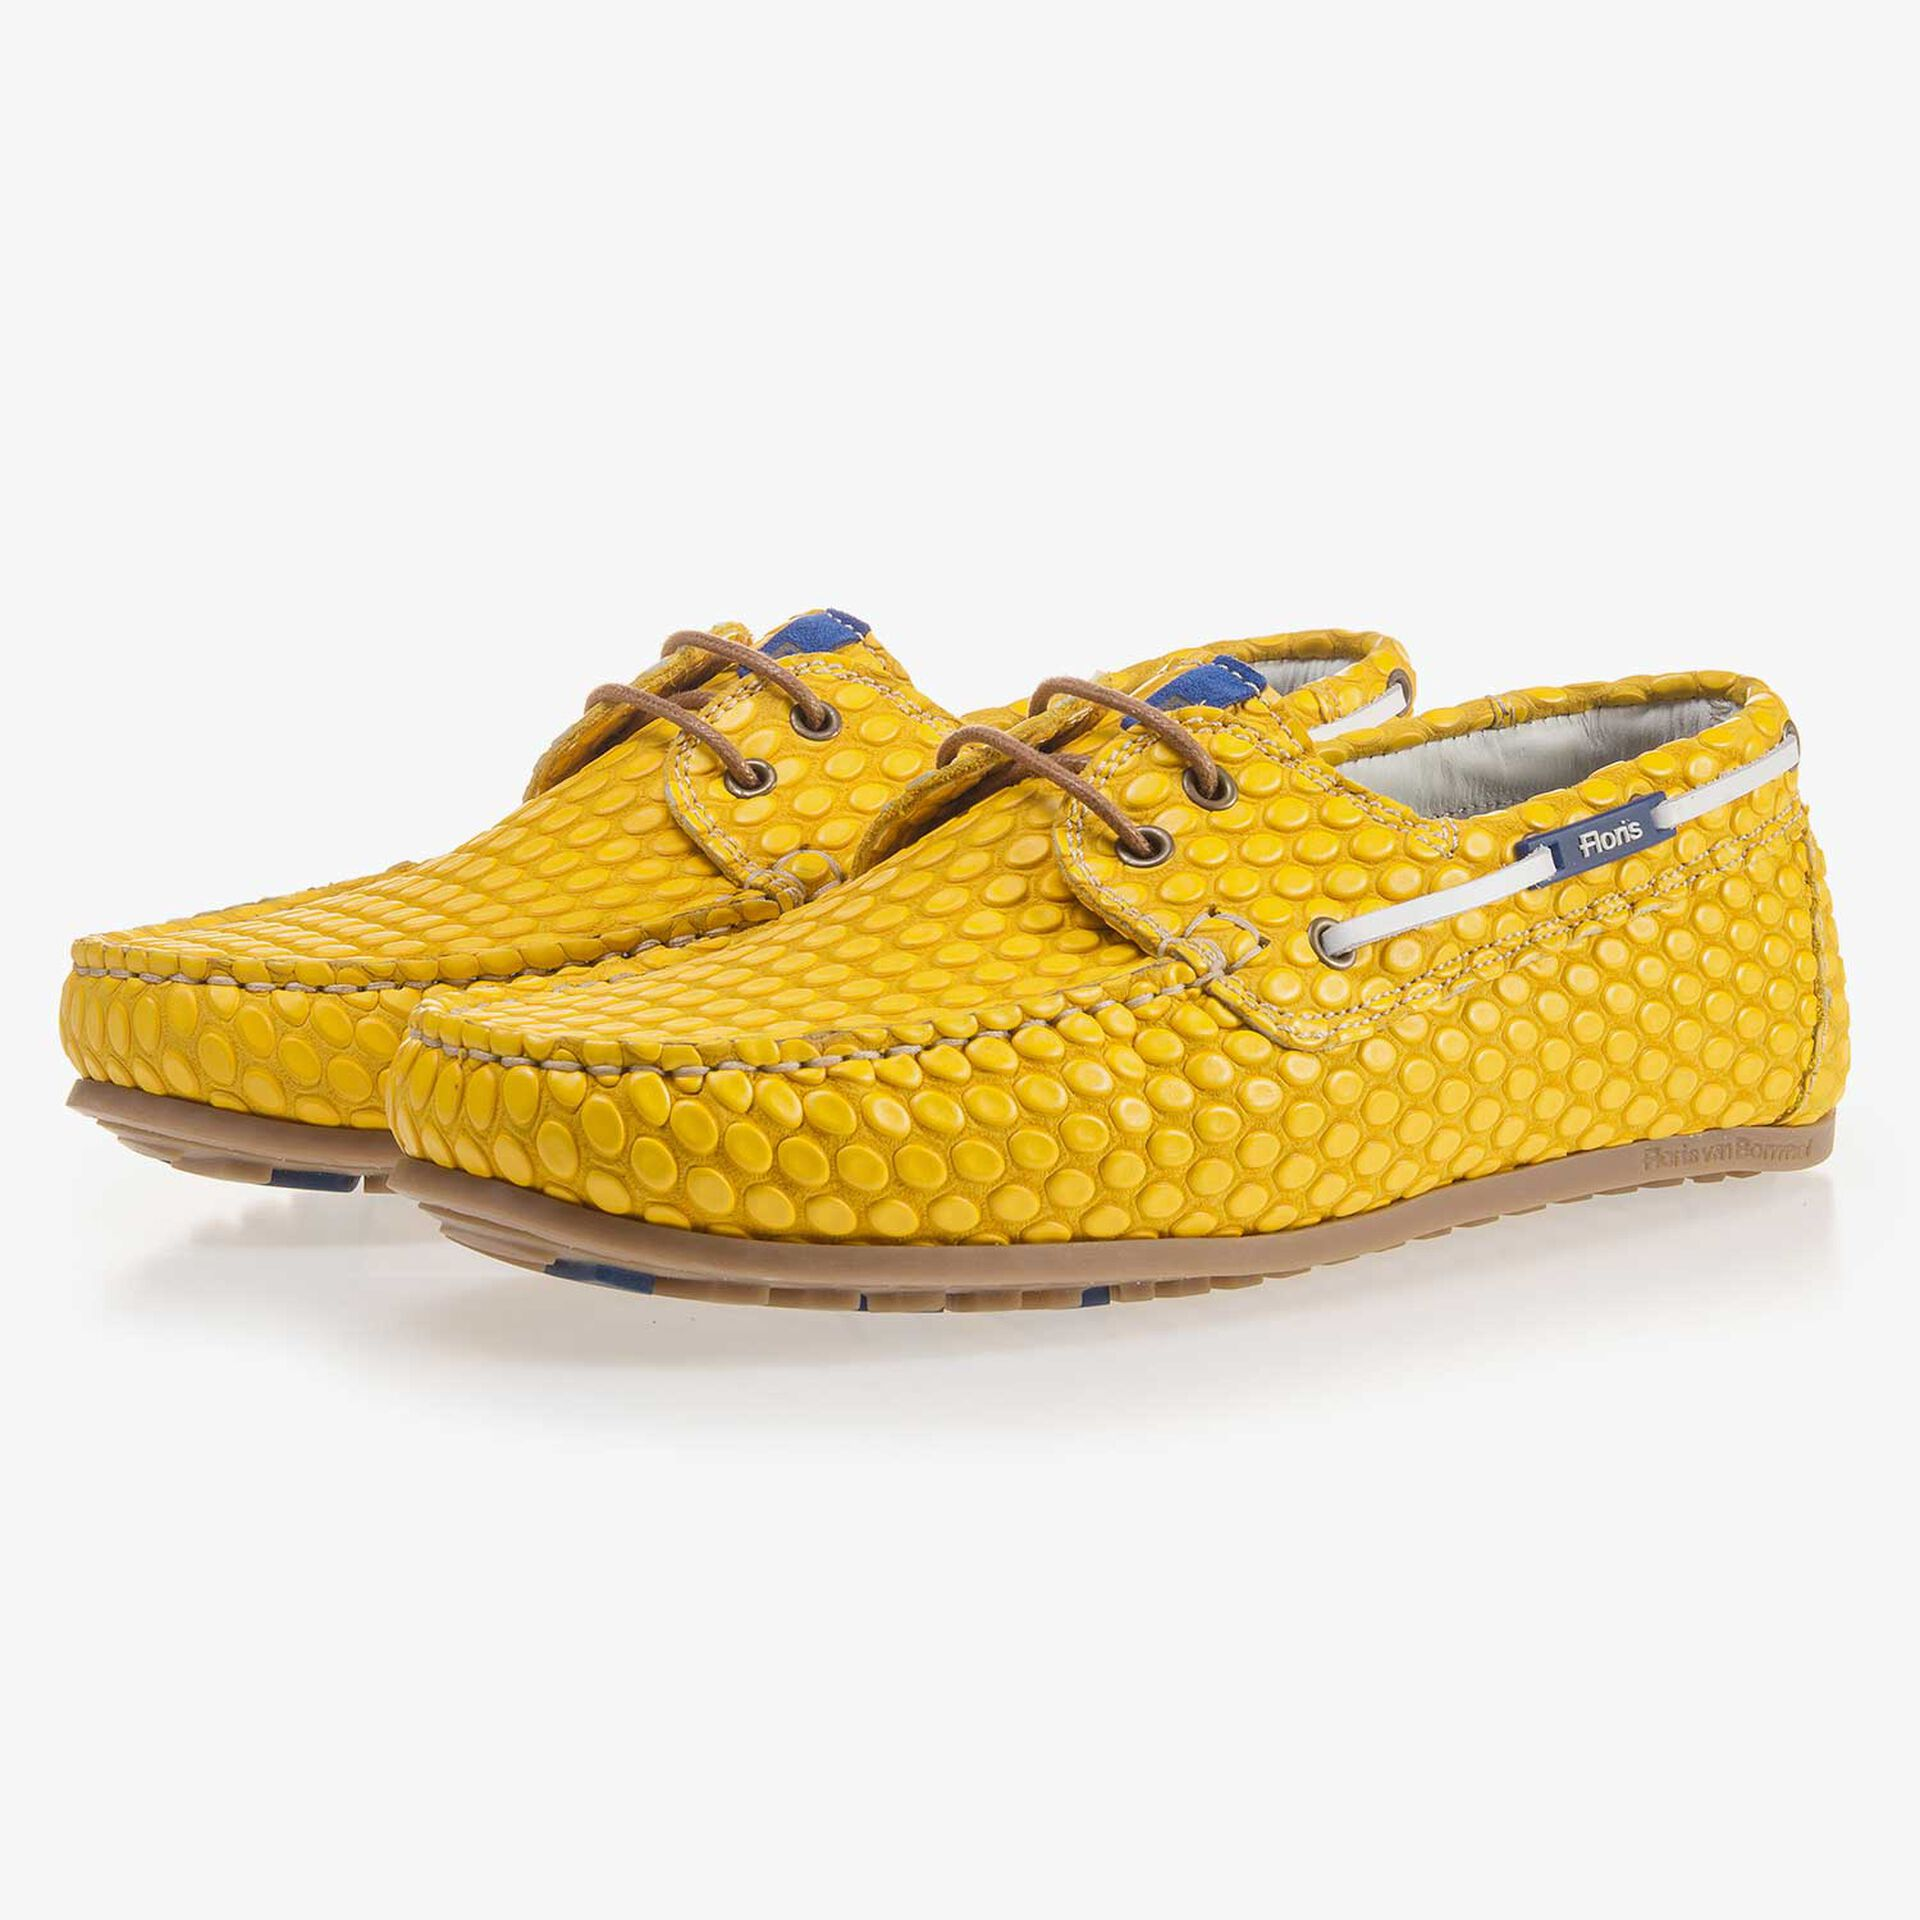 Yellow, printed boat shoe made of leather